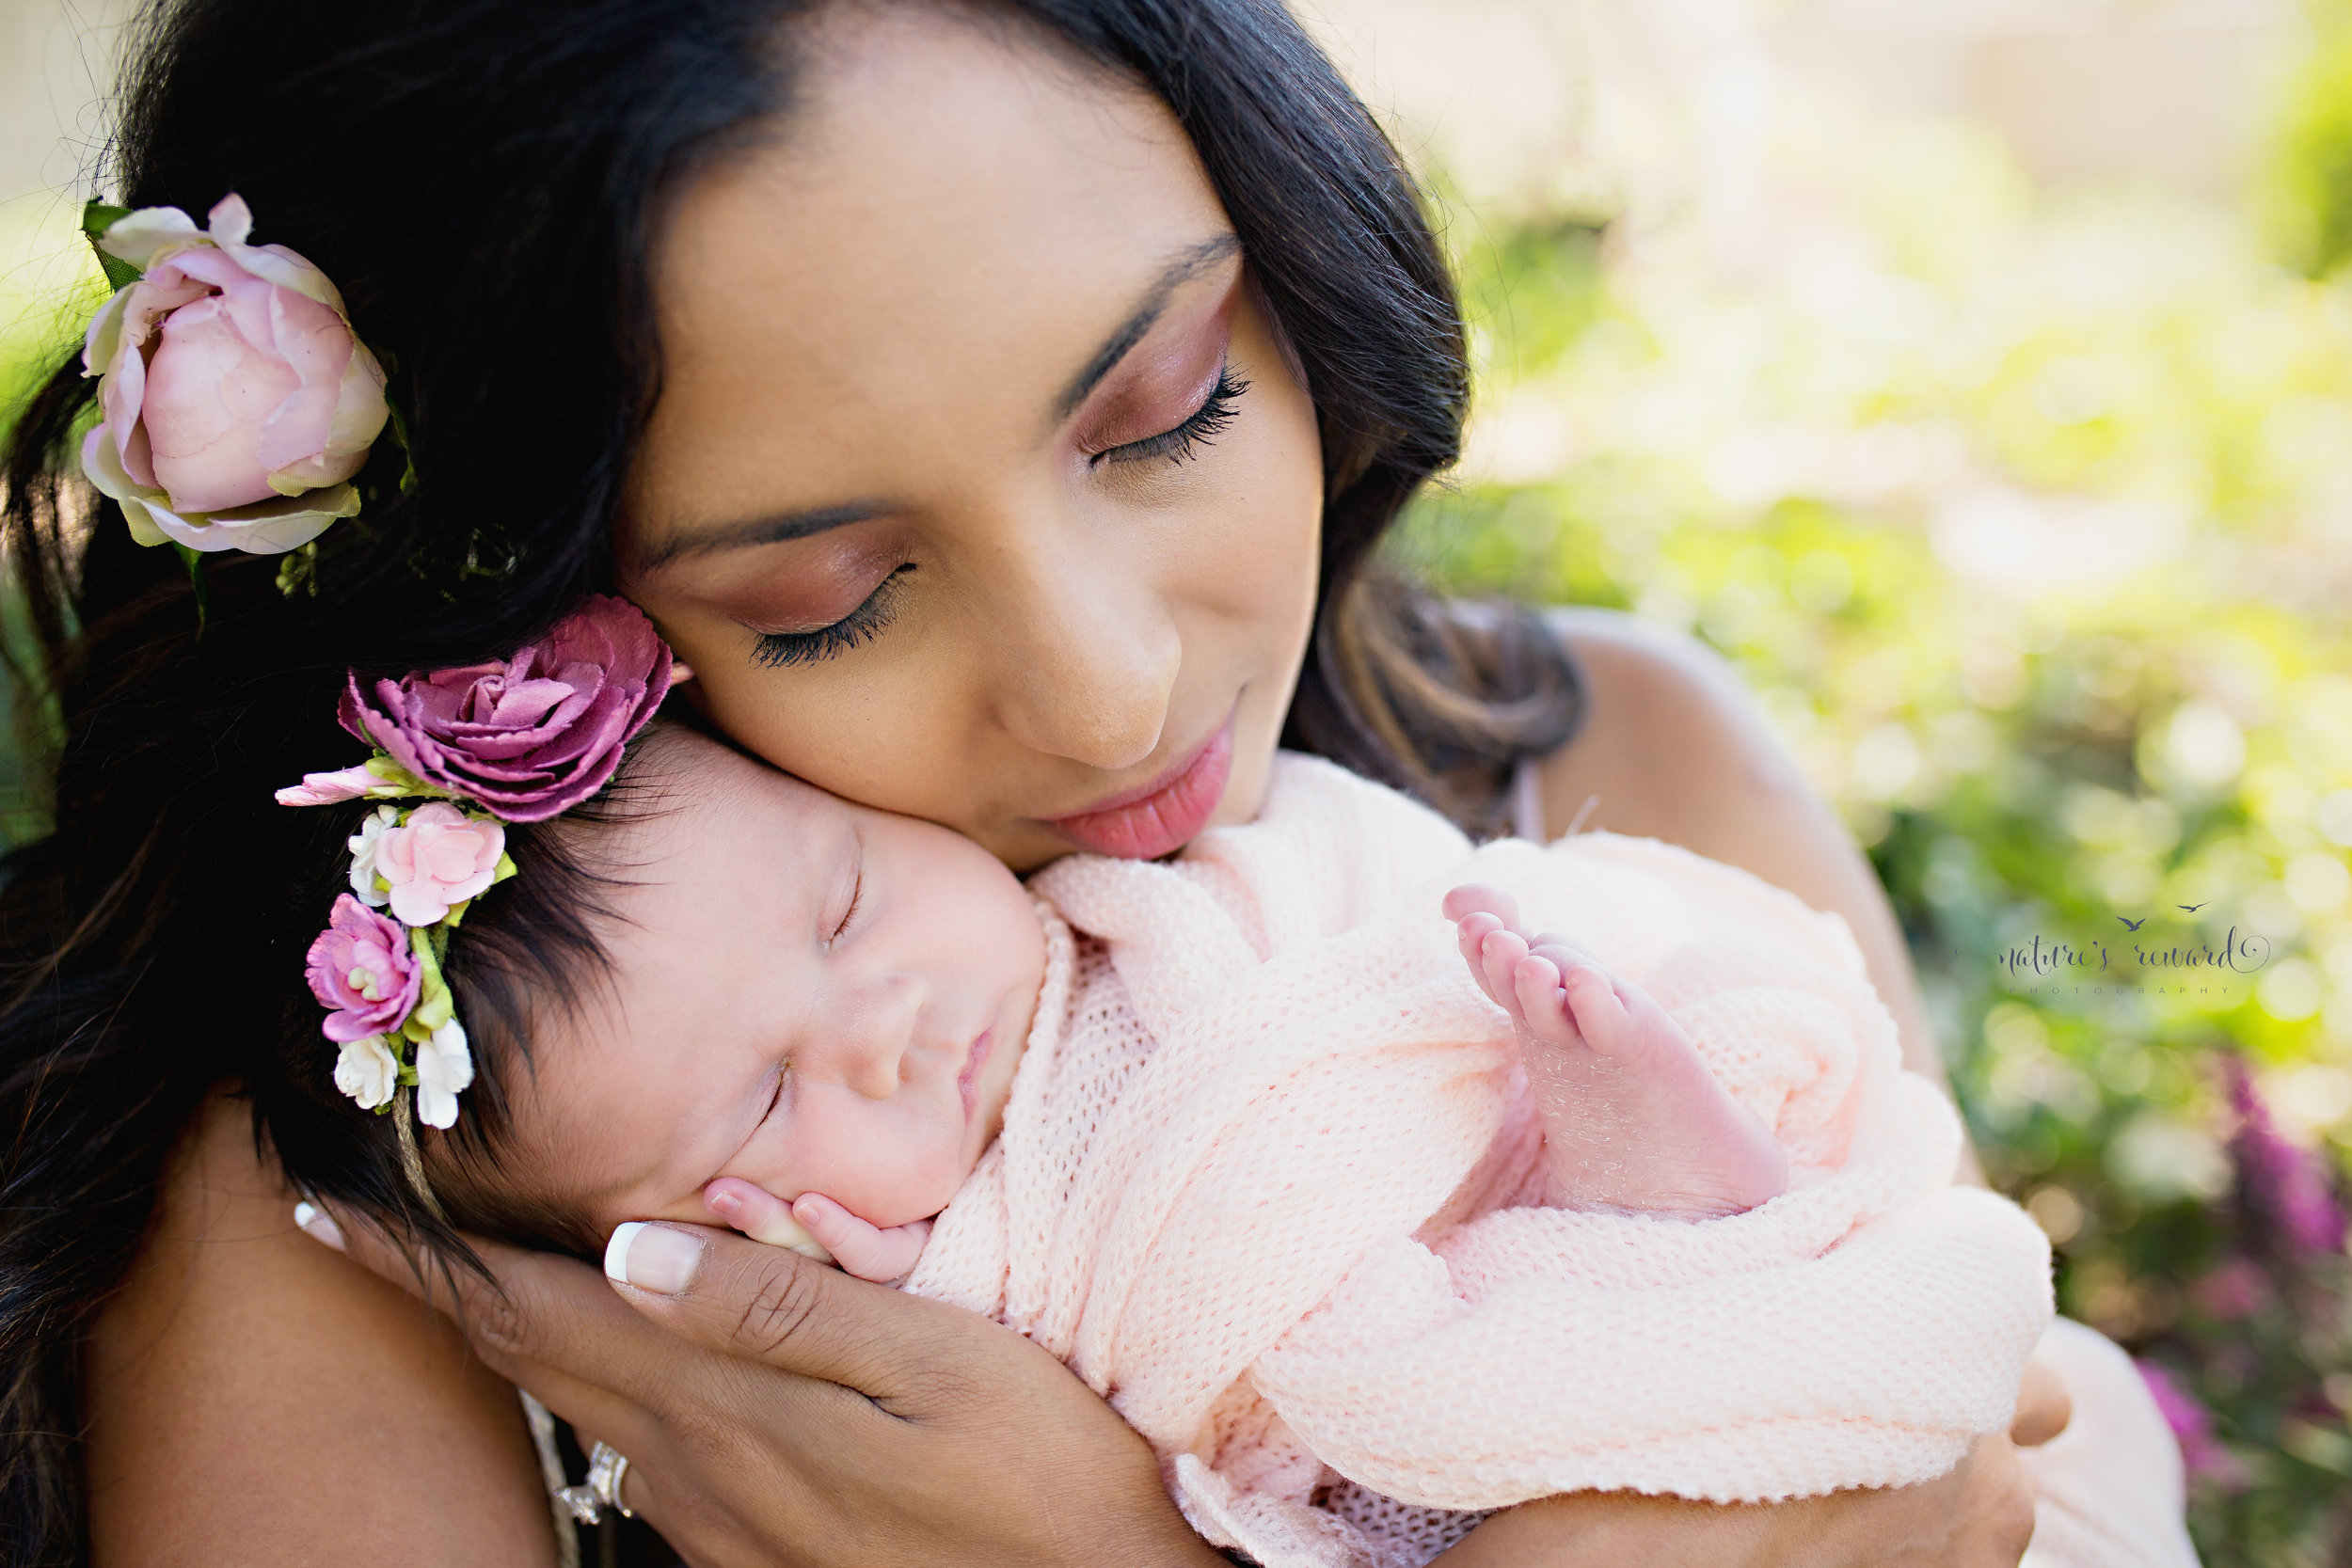 Gorgeous mother and daughter portrait